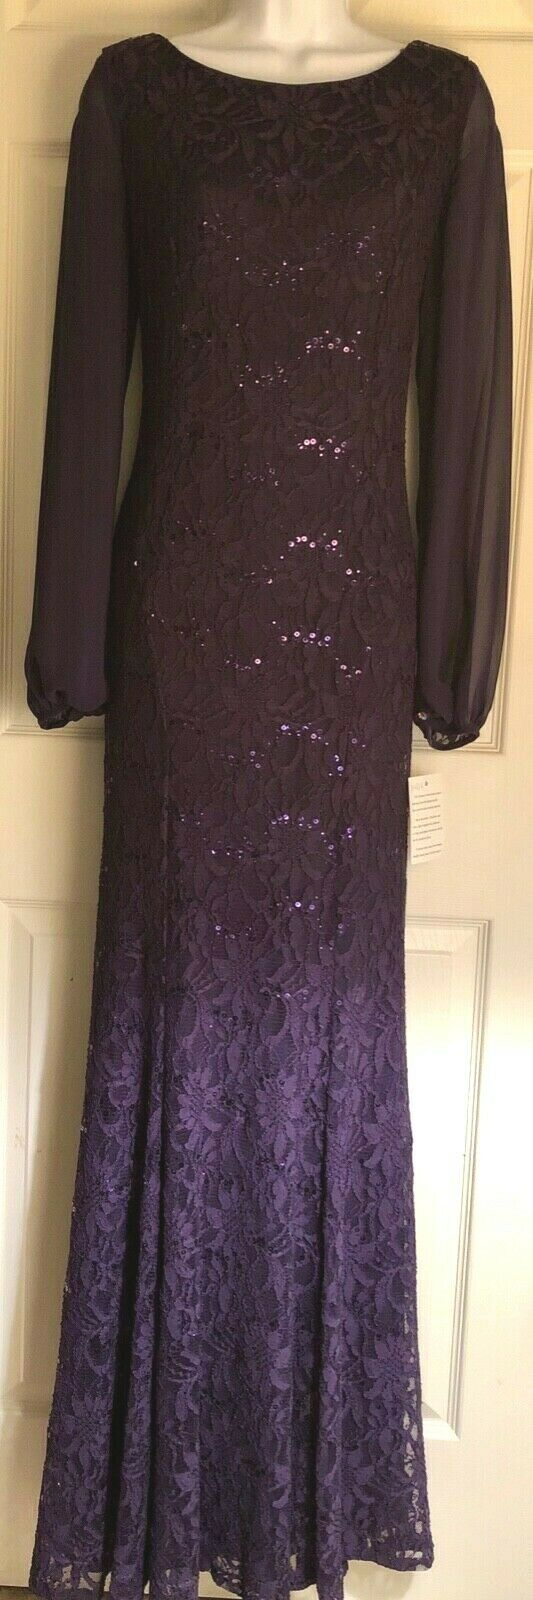 WAS $378.00 NWT! URSULA OF SWITZERLAND MISSYS PURPLE COWL BACK MOB GOWN Sz 8 - Outlet Values